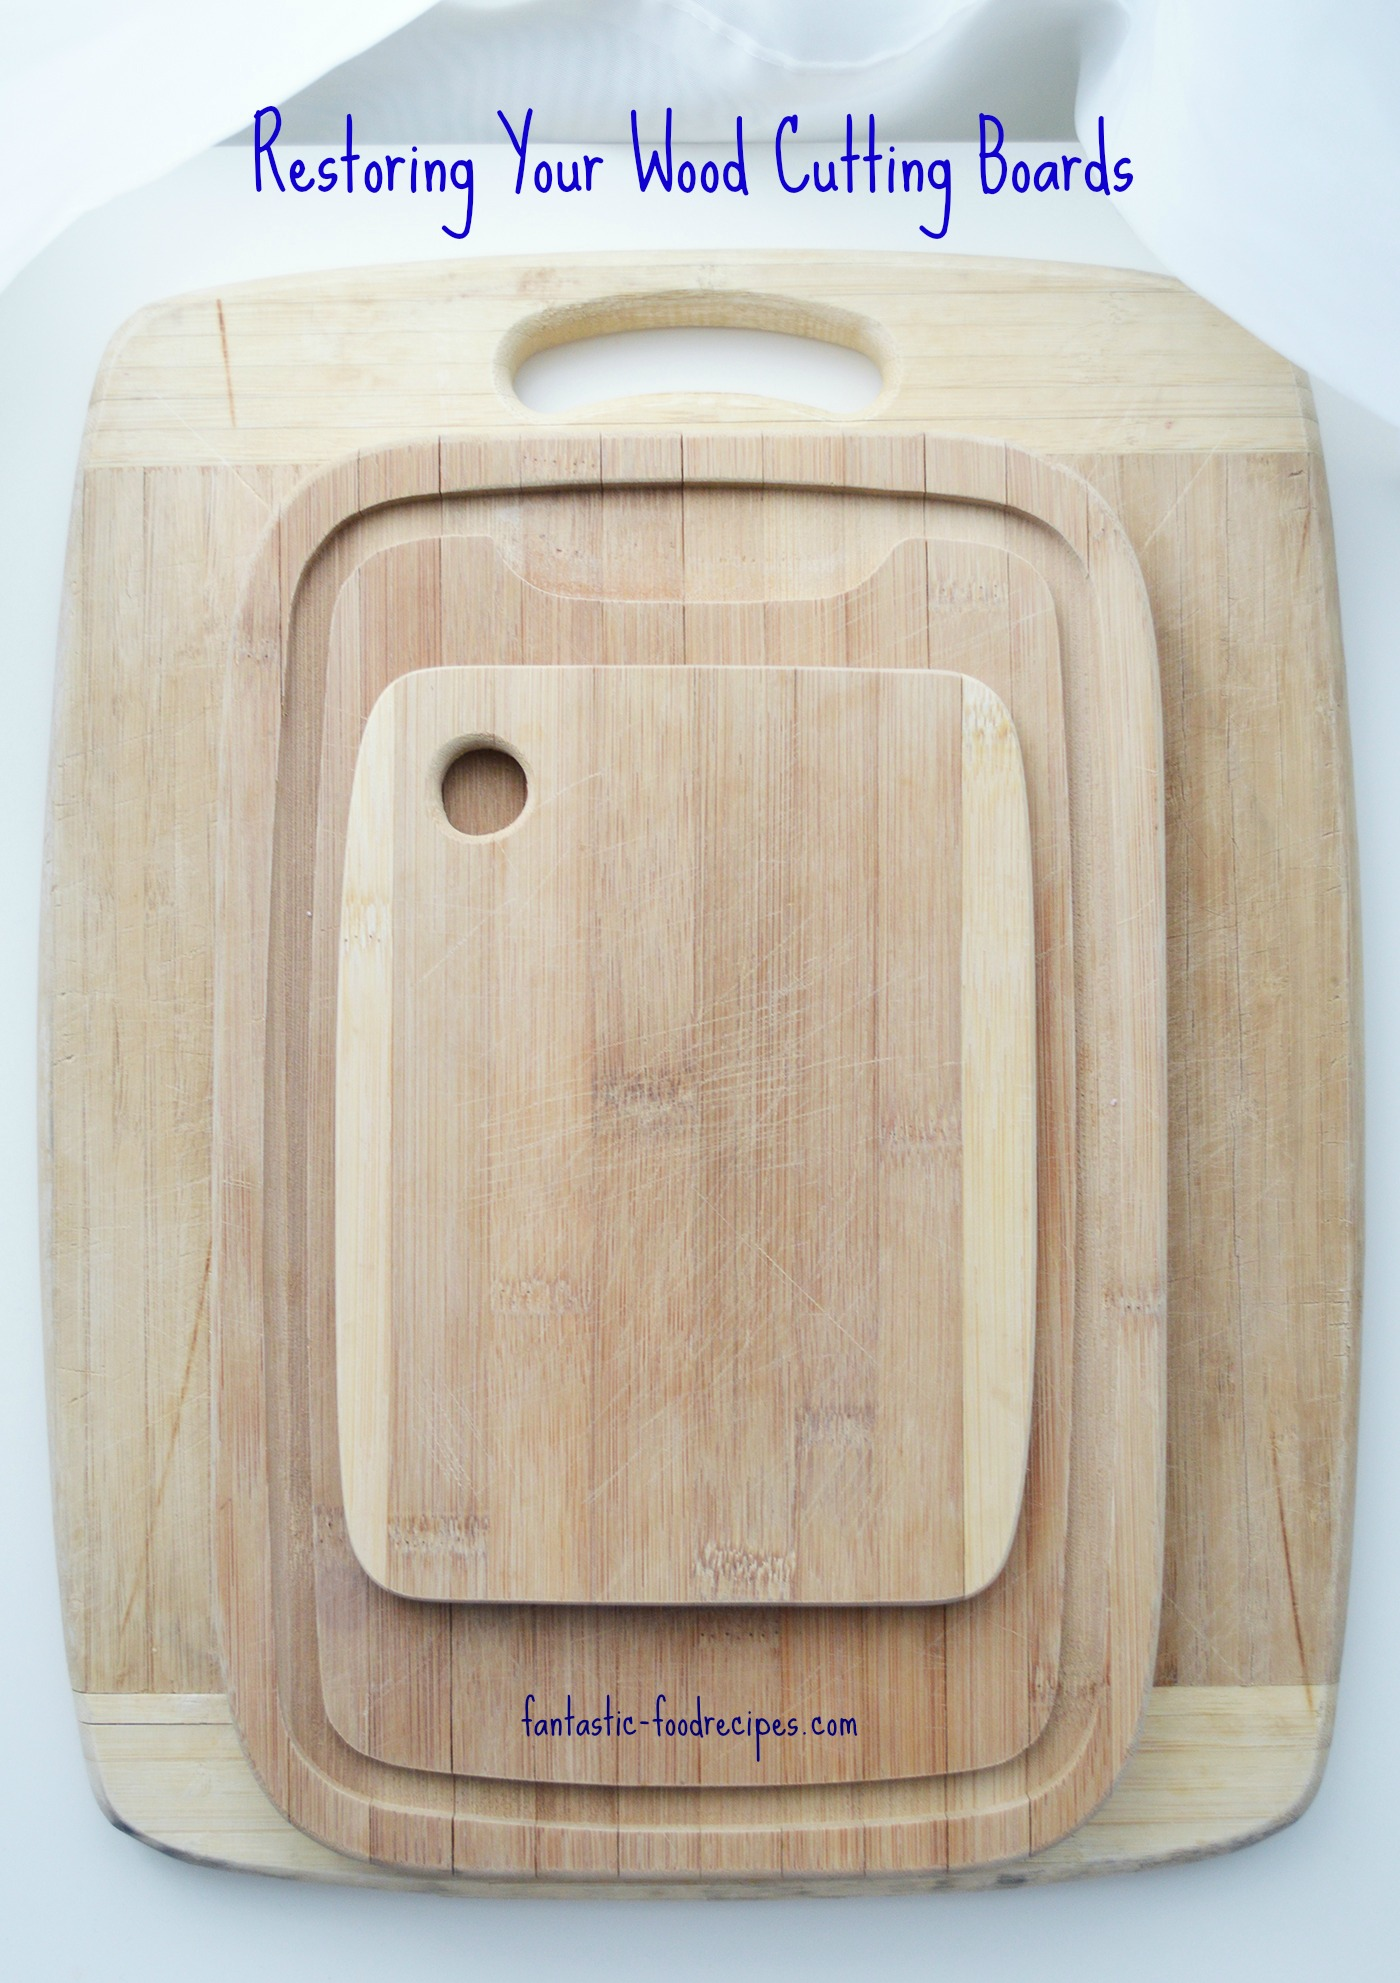 I Use This Cutting Board Periodically Restoring Your Wood Cutting Boards Fantastic Food Recipes